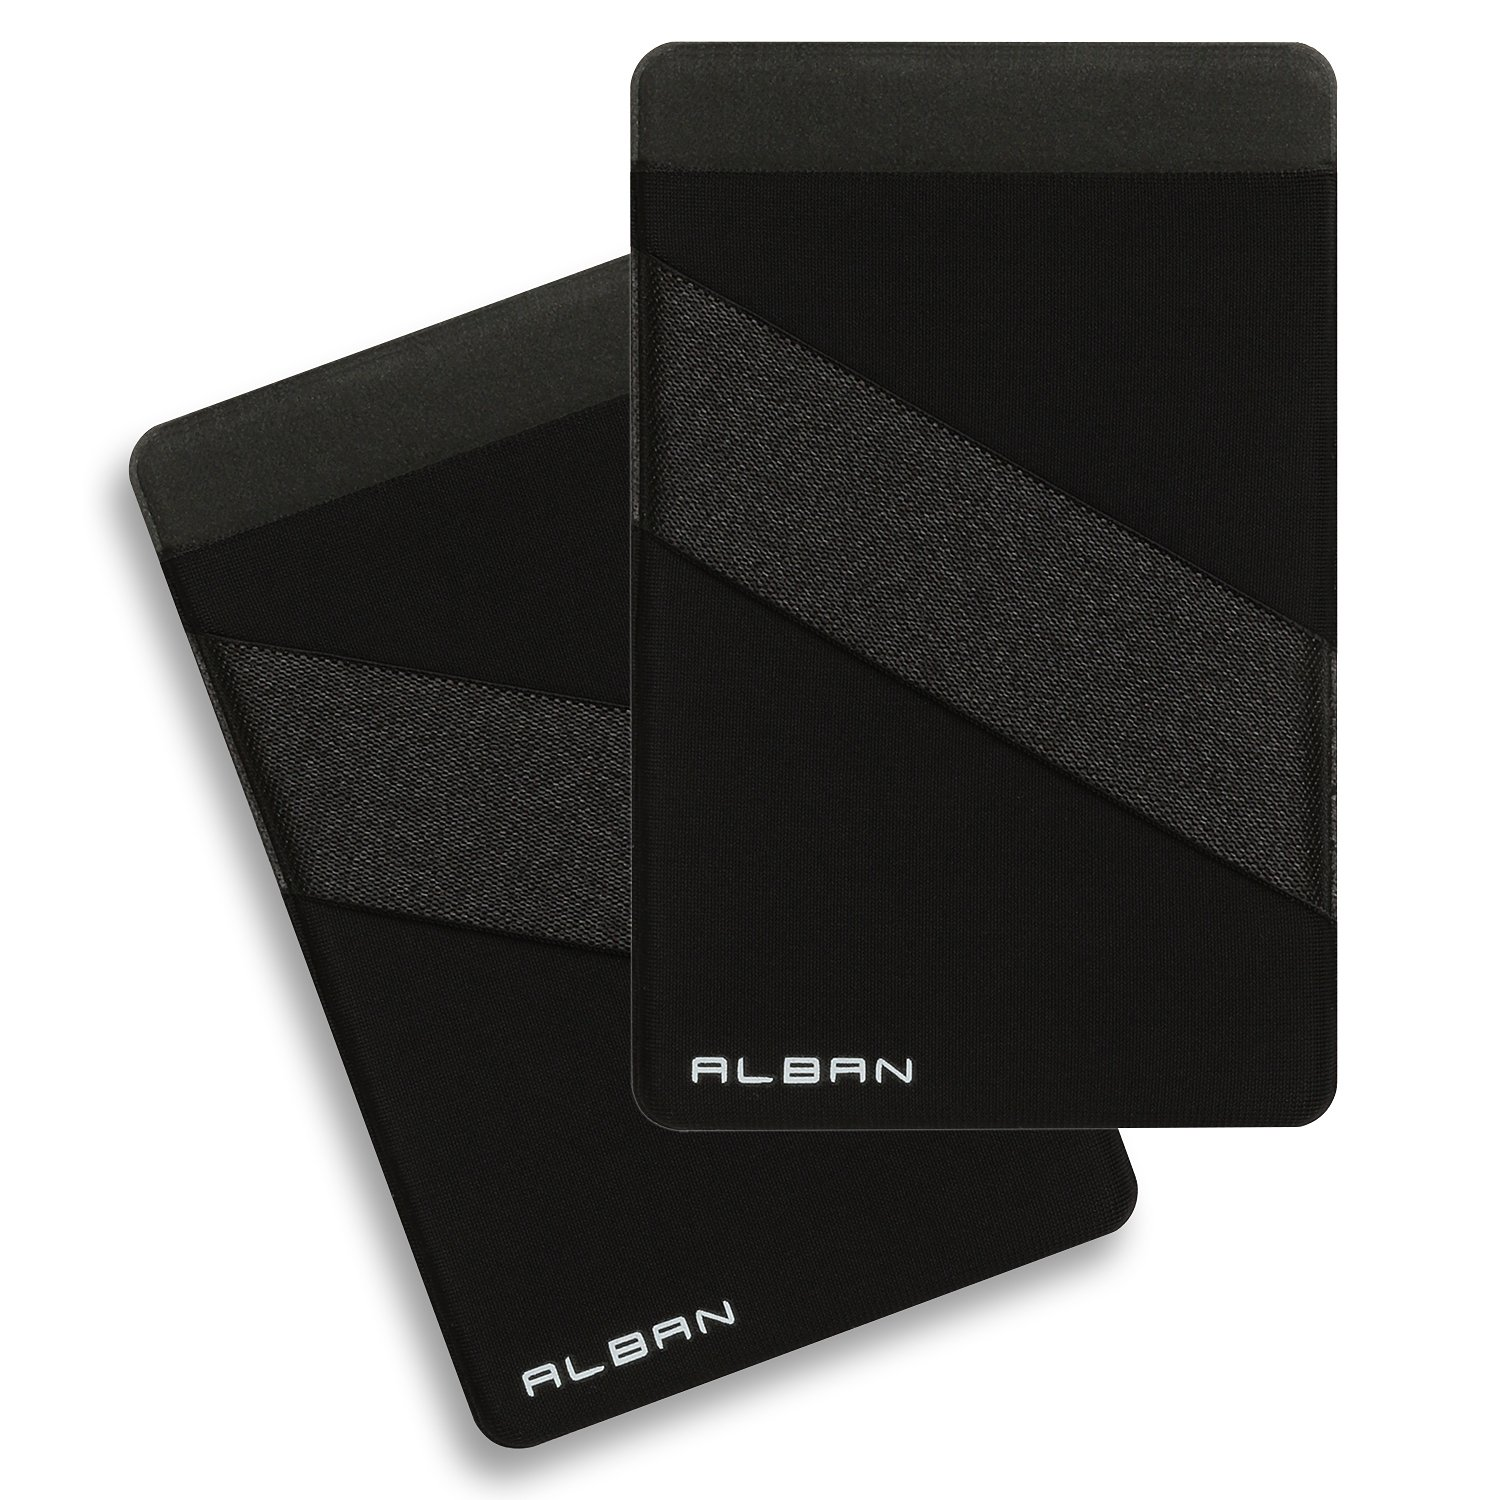 Alban 2 Pack Stick on Cell Phone Credit Card Holder RFID Blocking with Strap - Black Right Hand by Alban